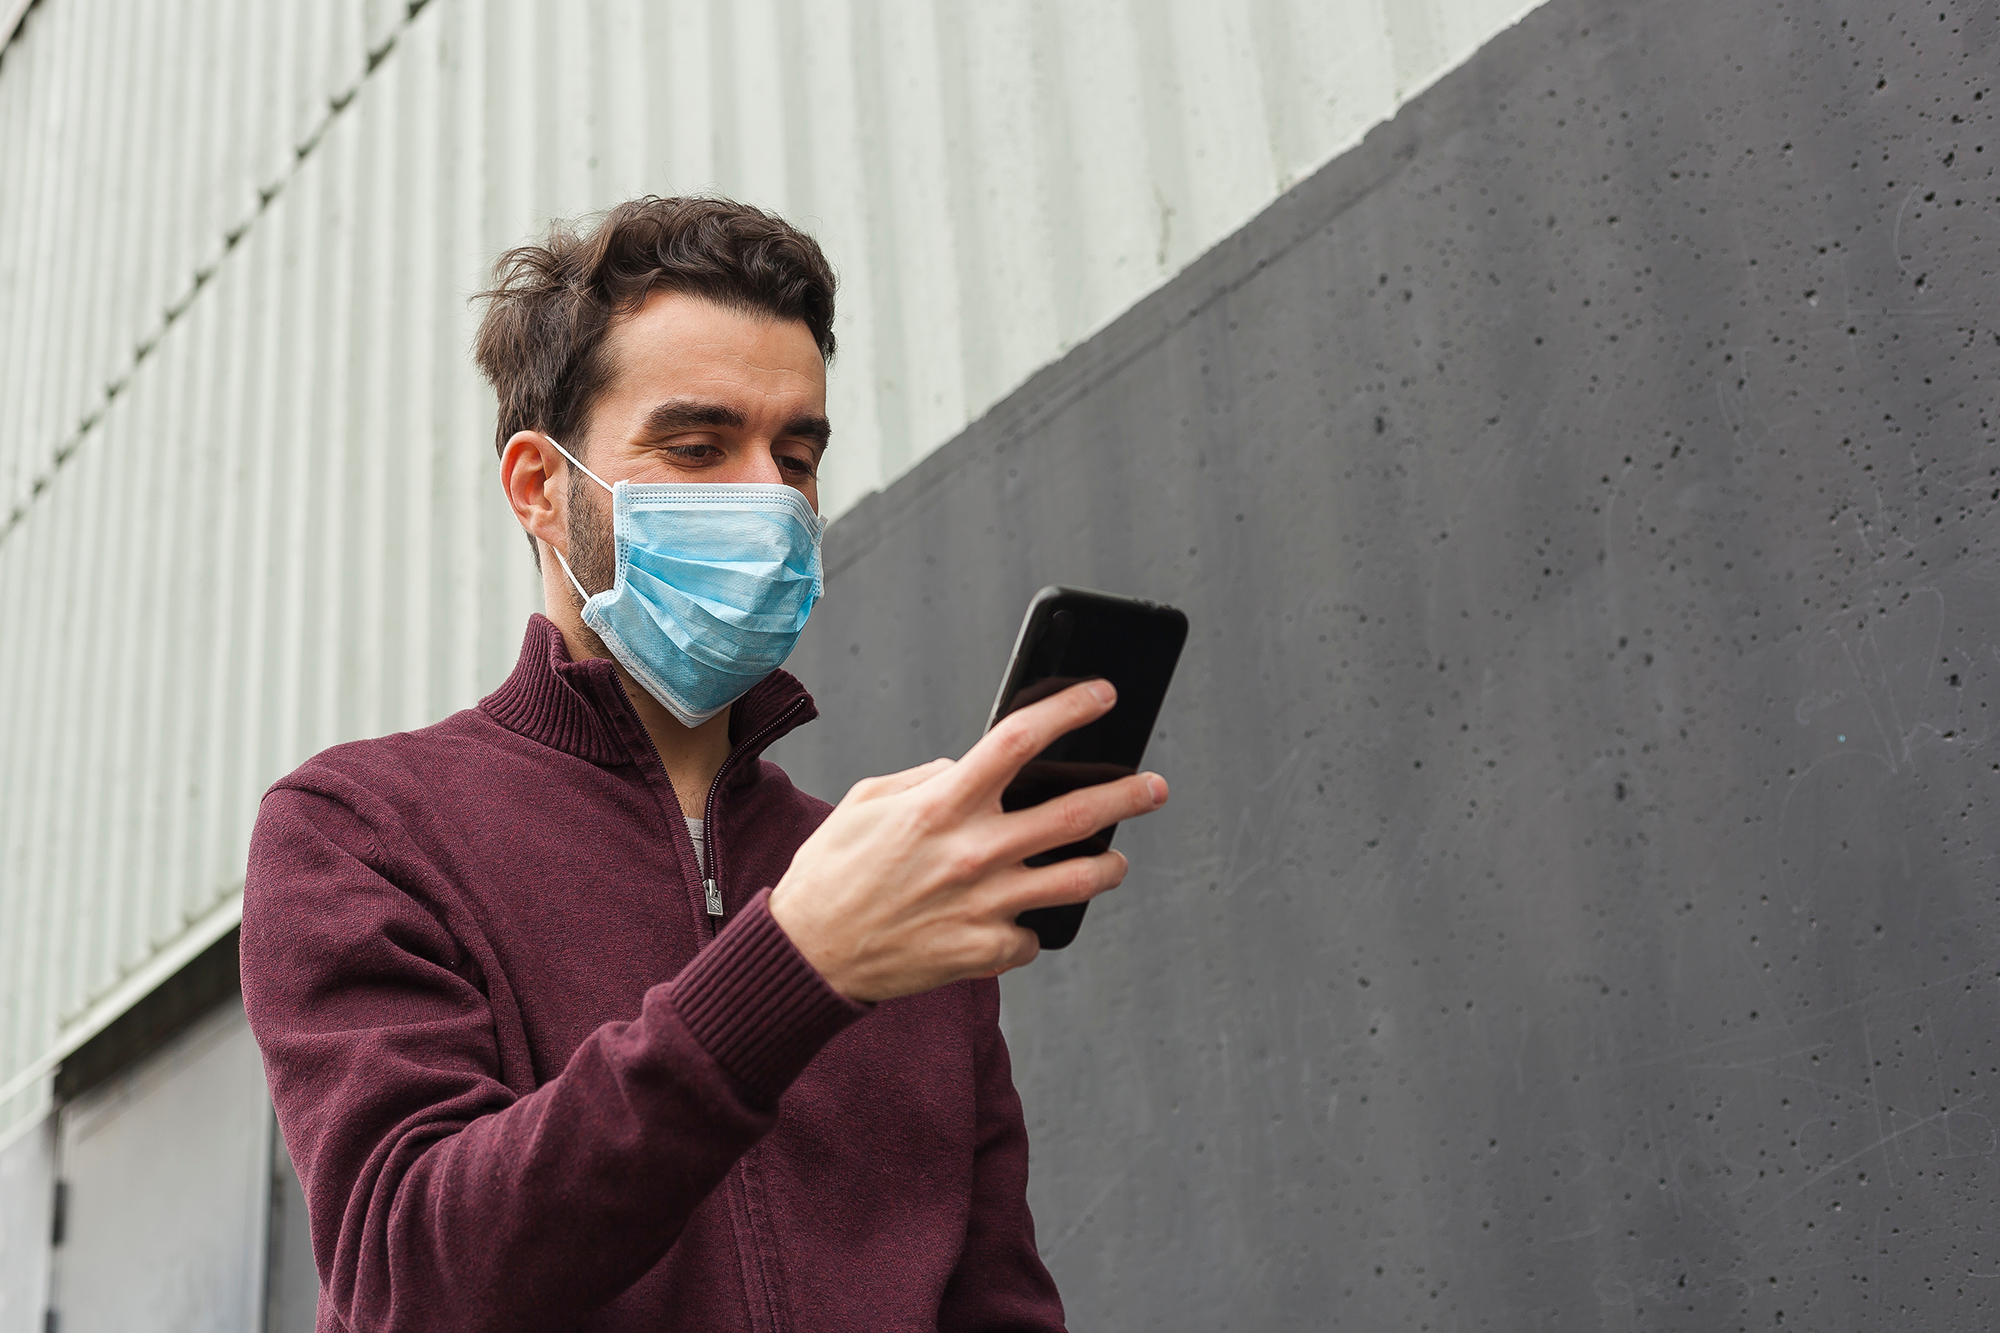 Man wearing a surgical mask. (Image: Shutterstock)